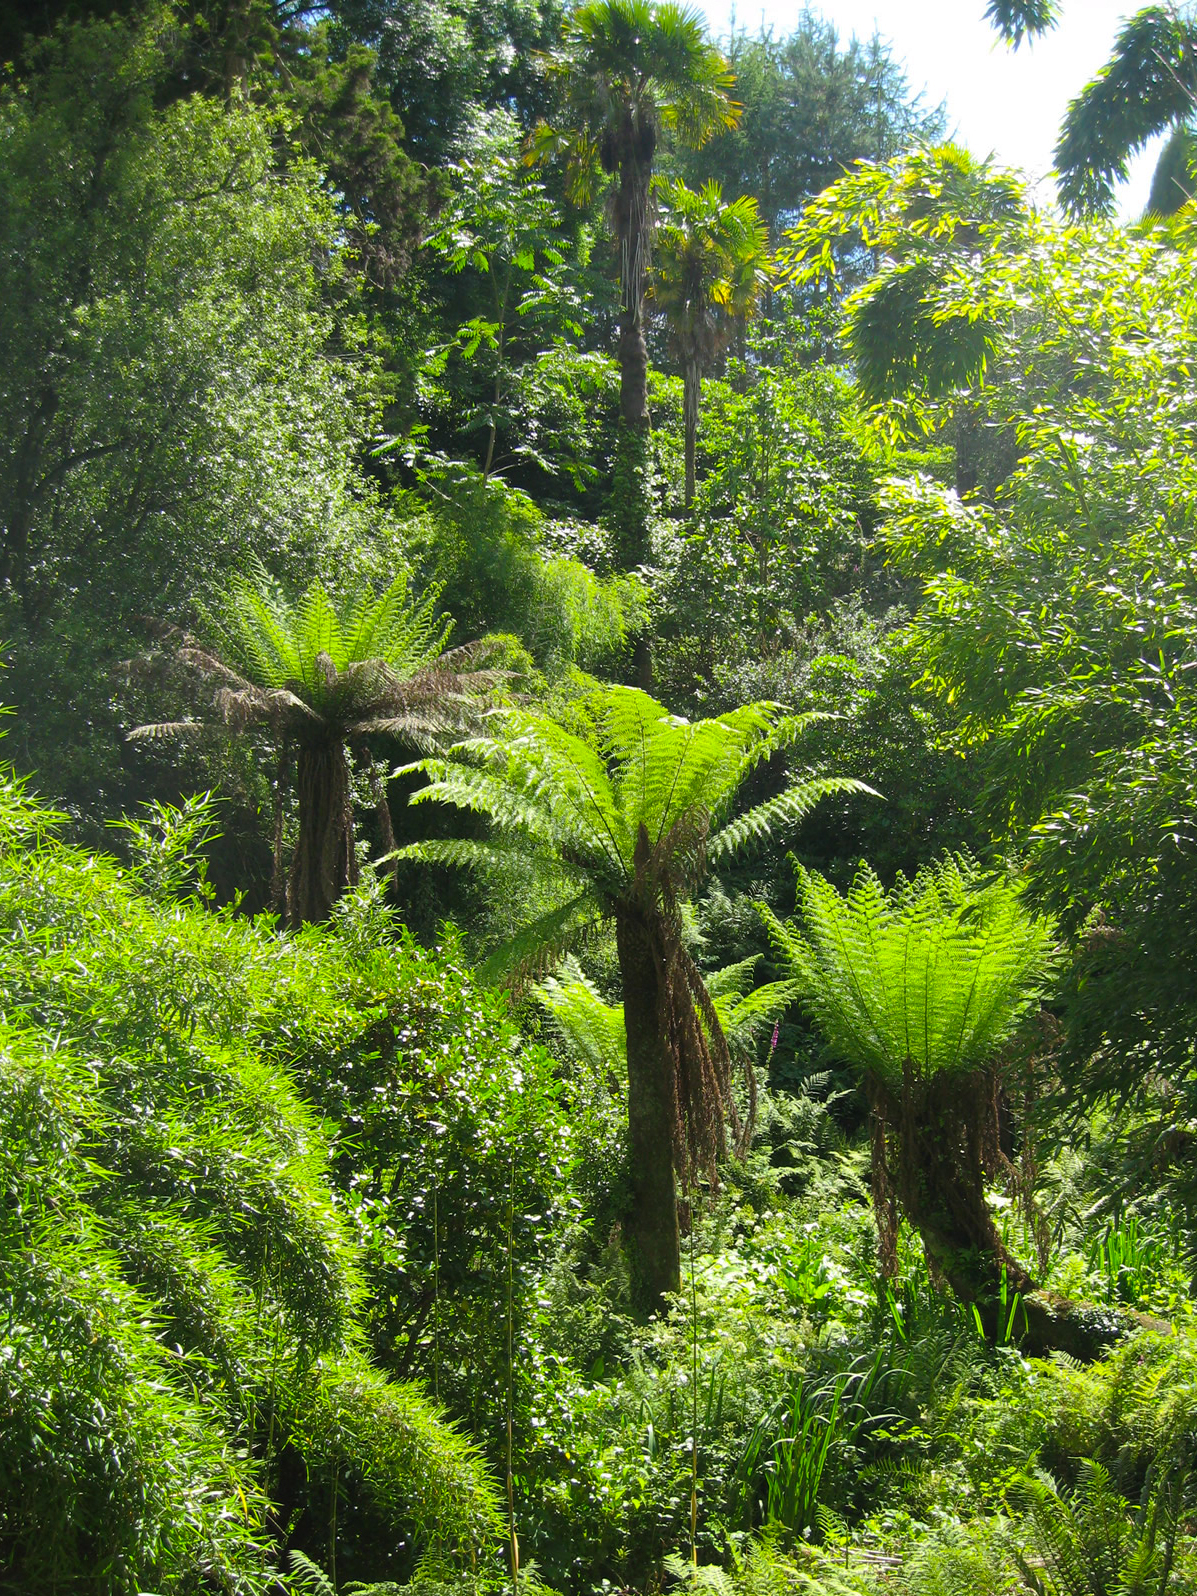 How To Look After A Tree Fern